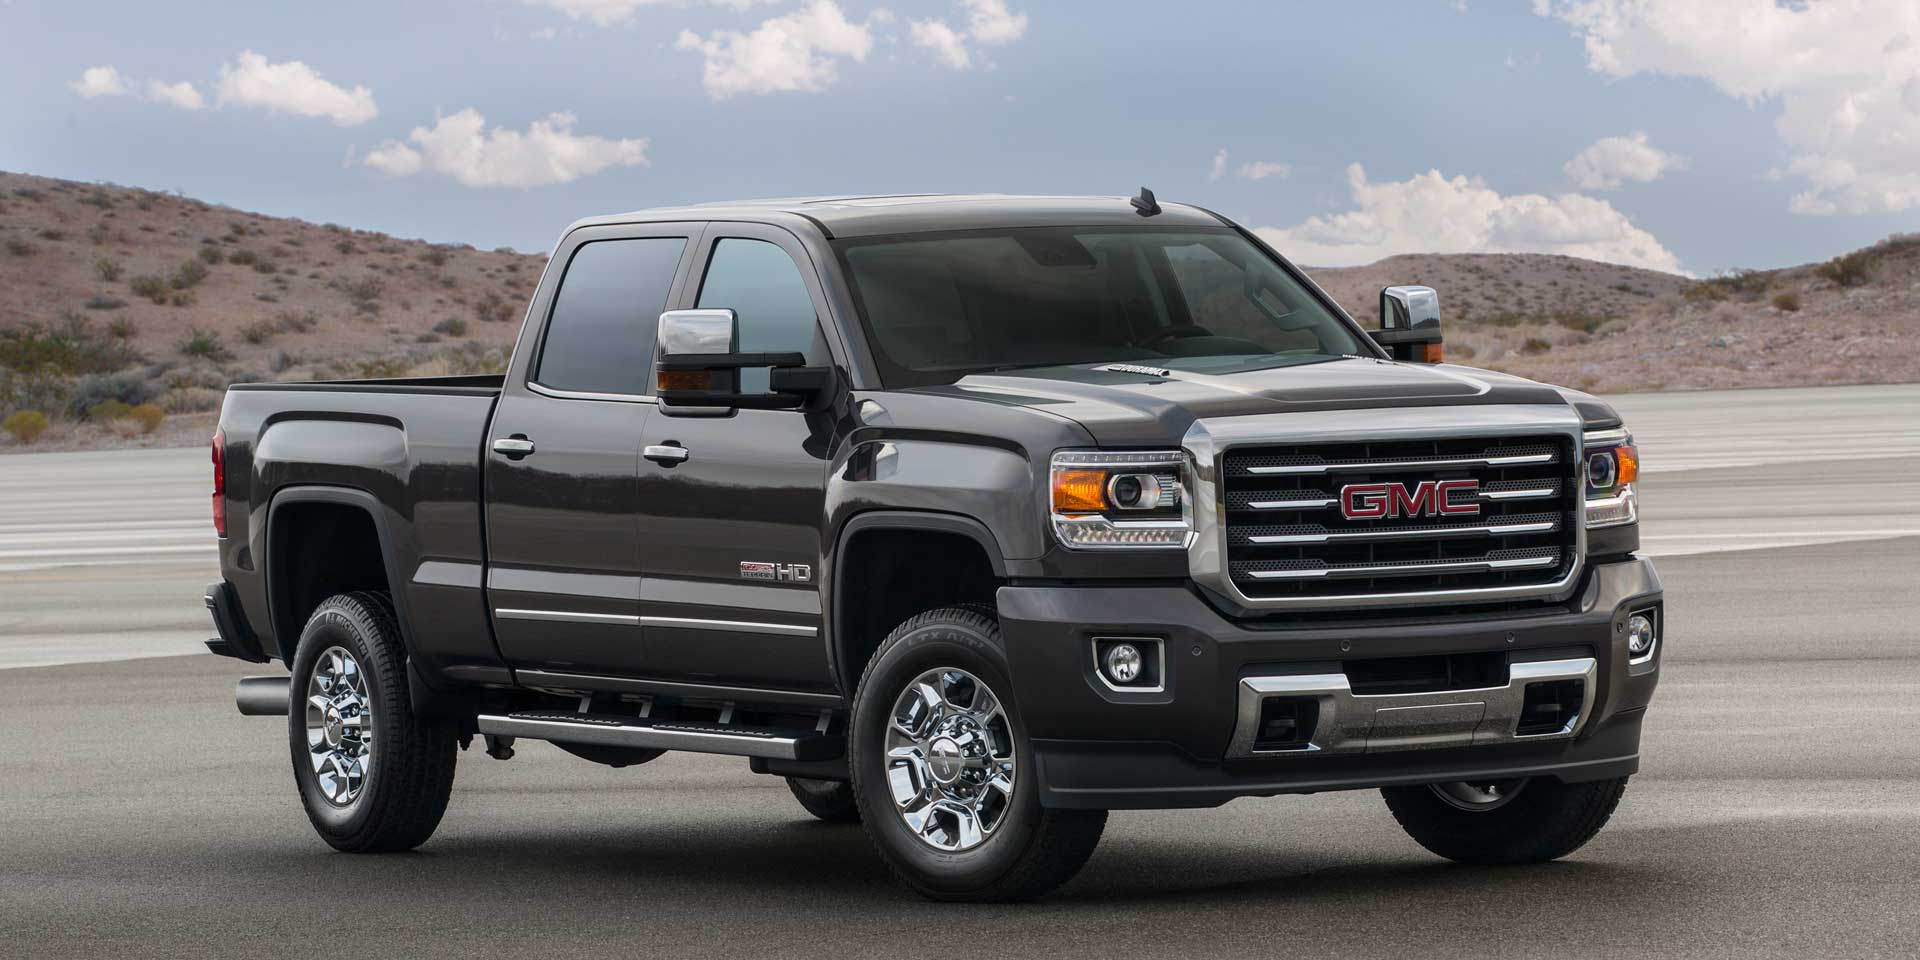 htm stock main c oh near dealers for sale l truck dealer gmc columbus used